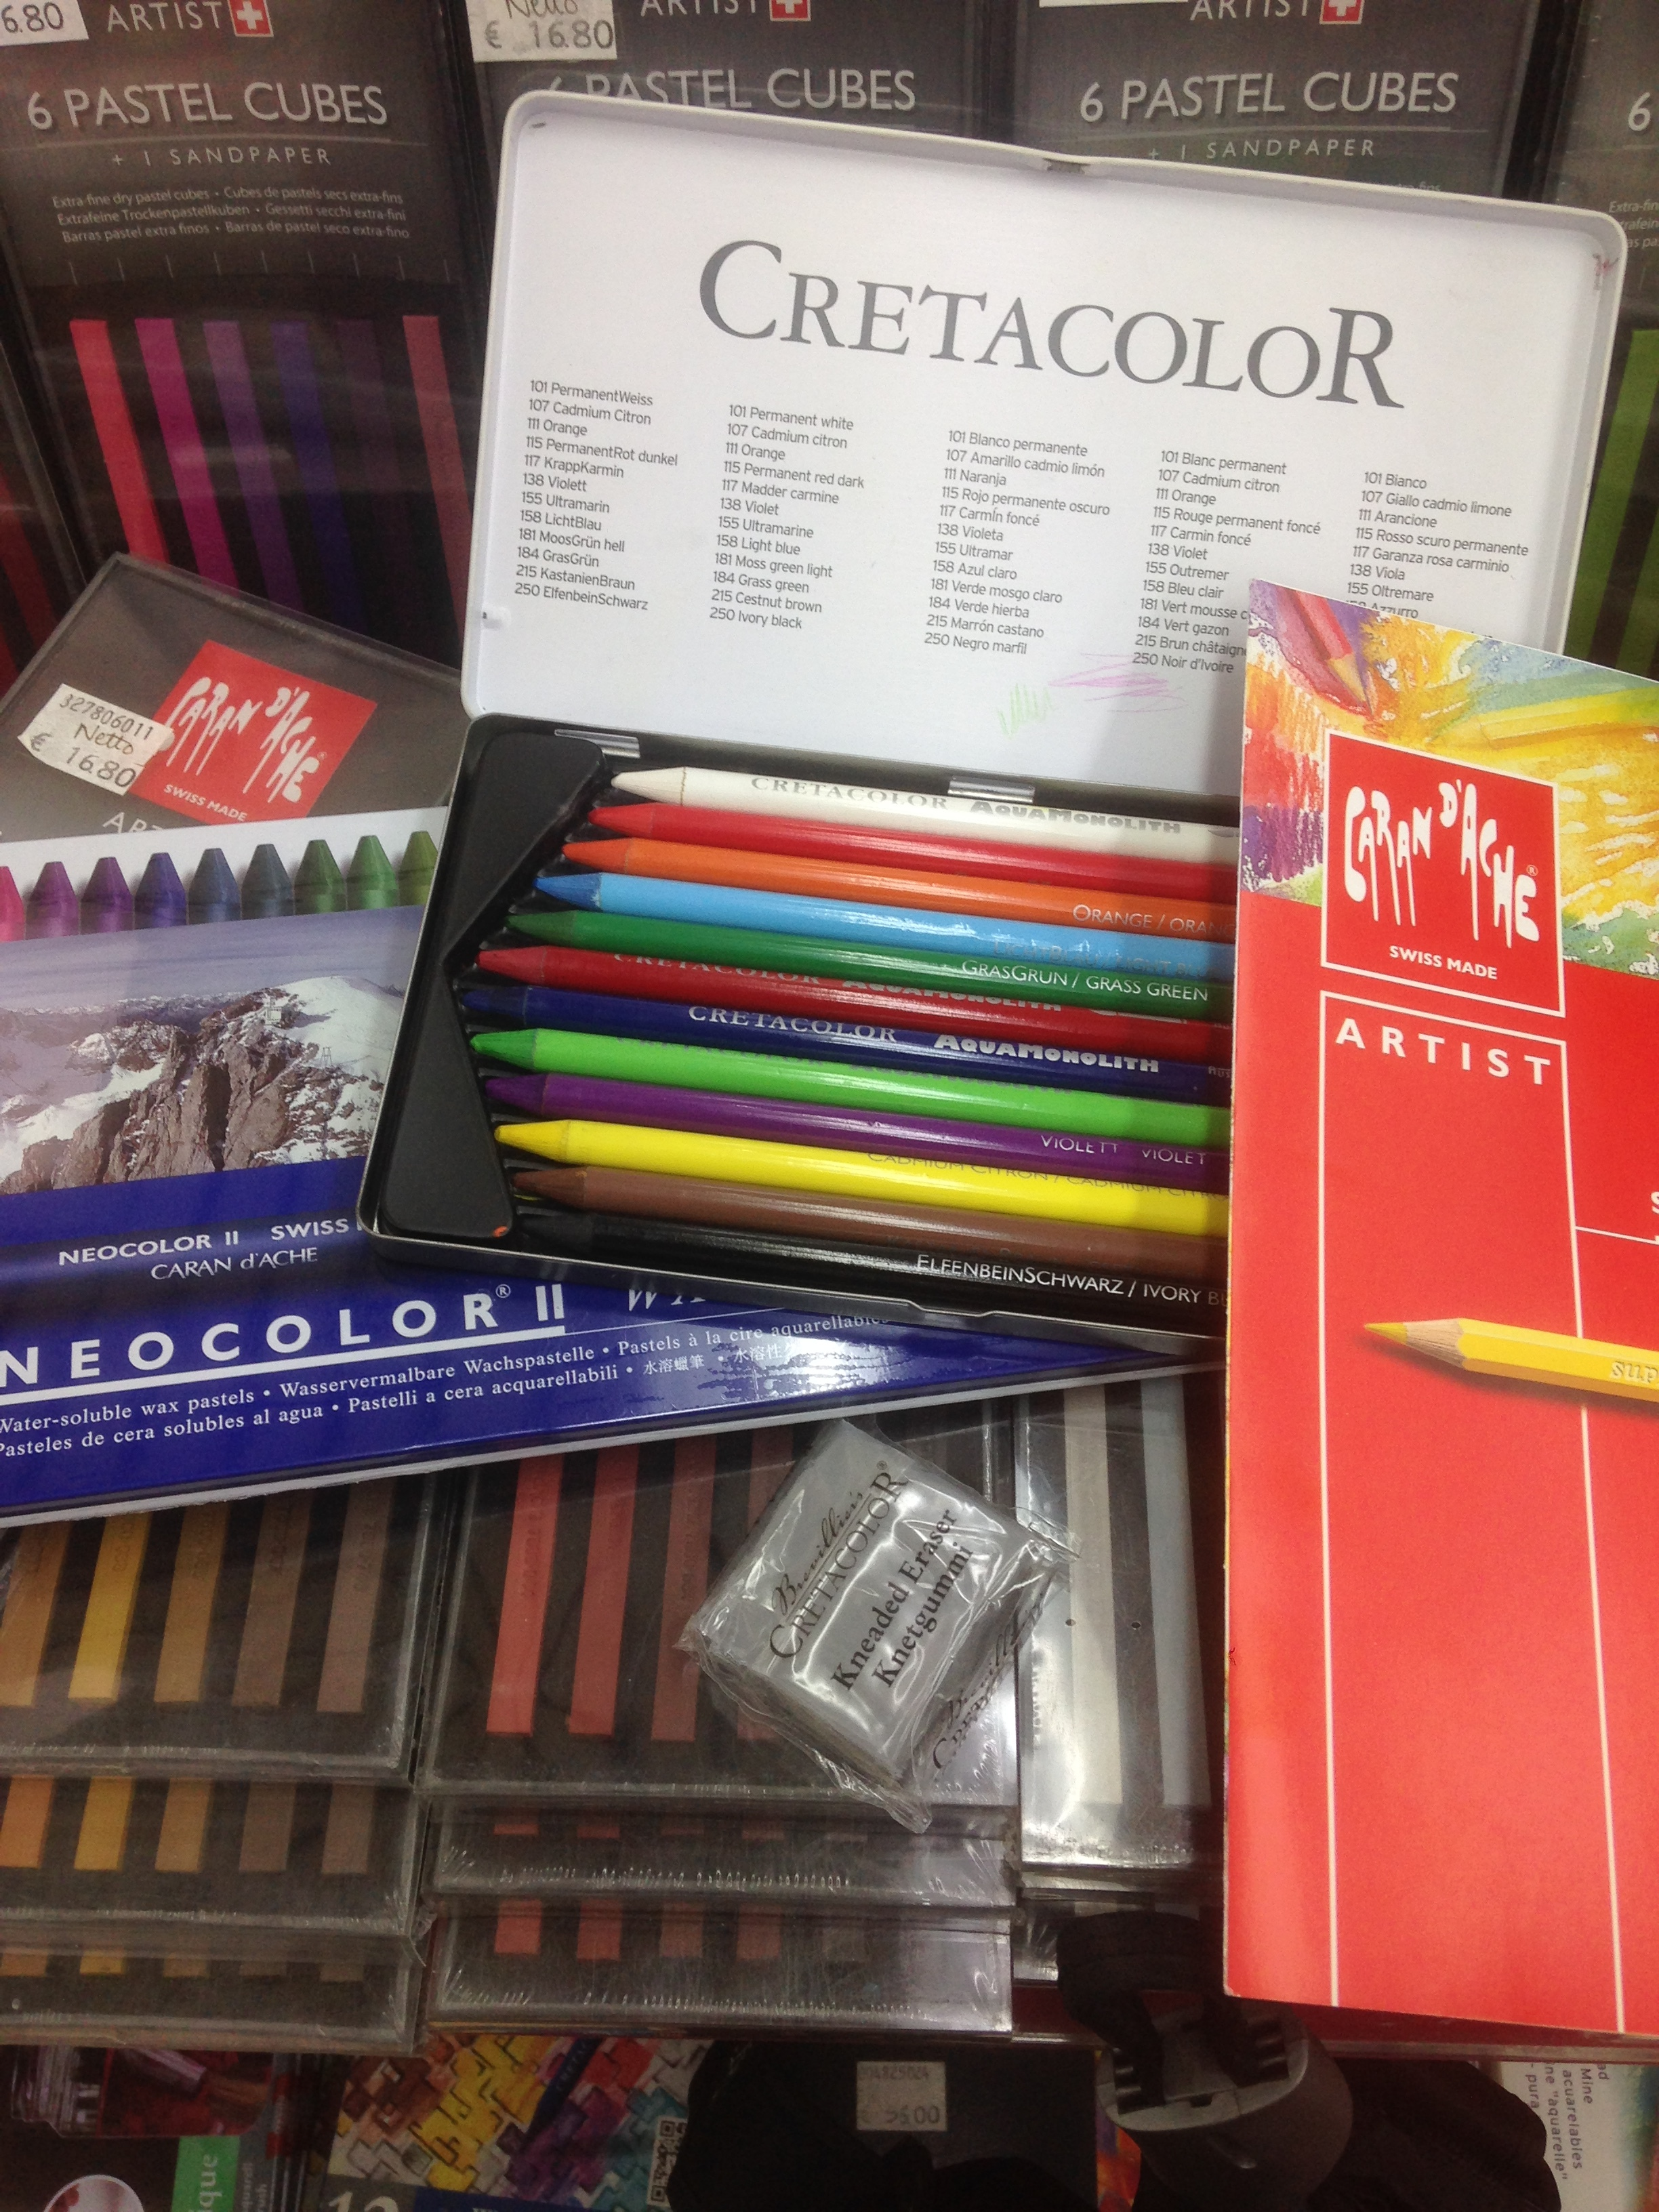 Tools of the trade. Testing out different water soluble options for coloring my artwork.